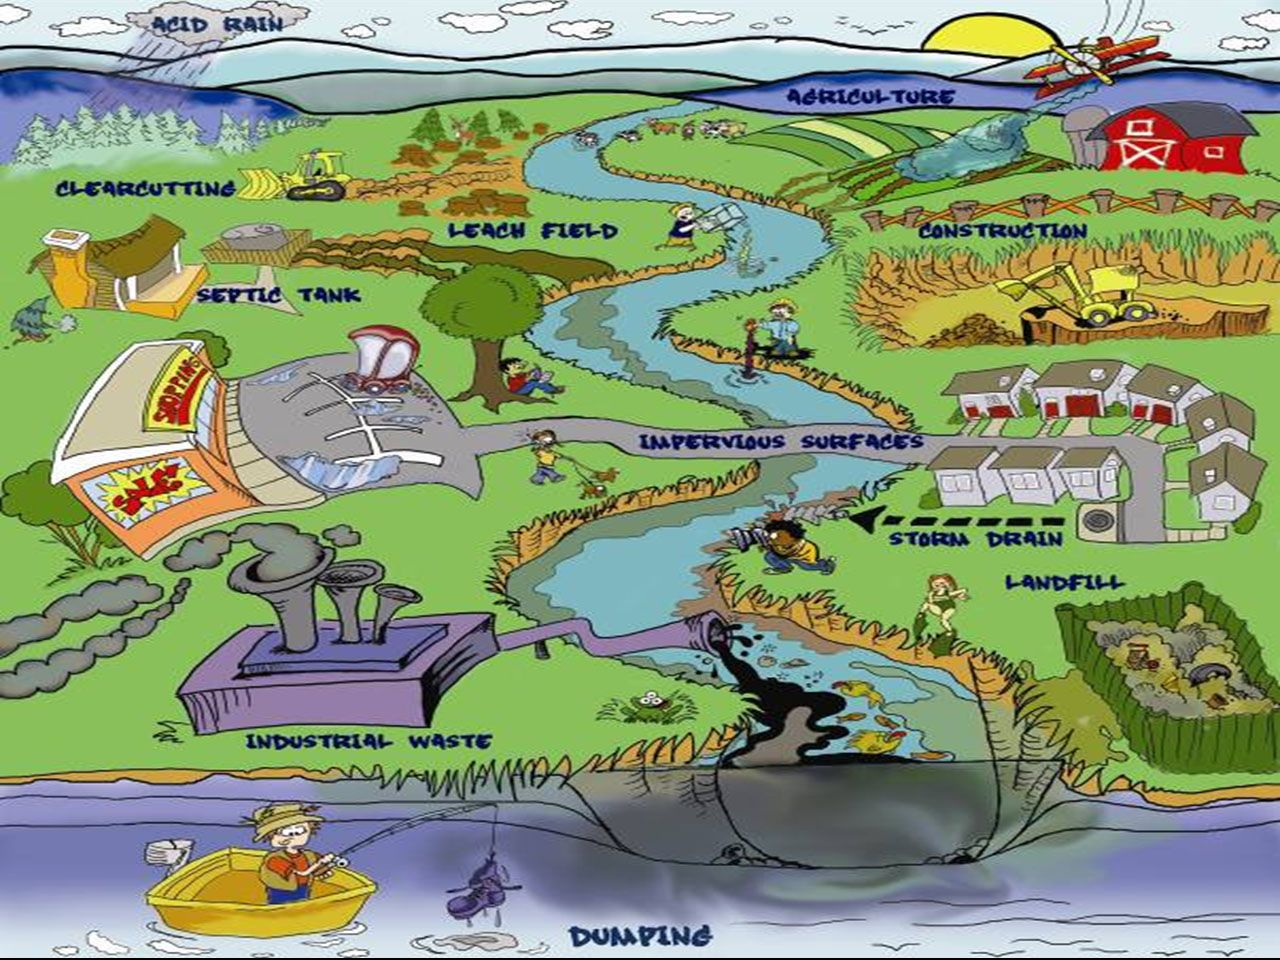 The Sources And Impacts Of Water Pollution